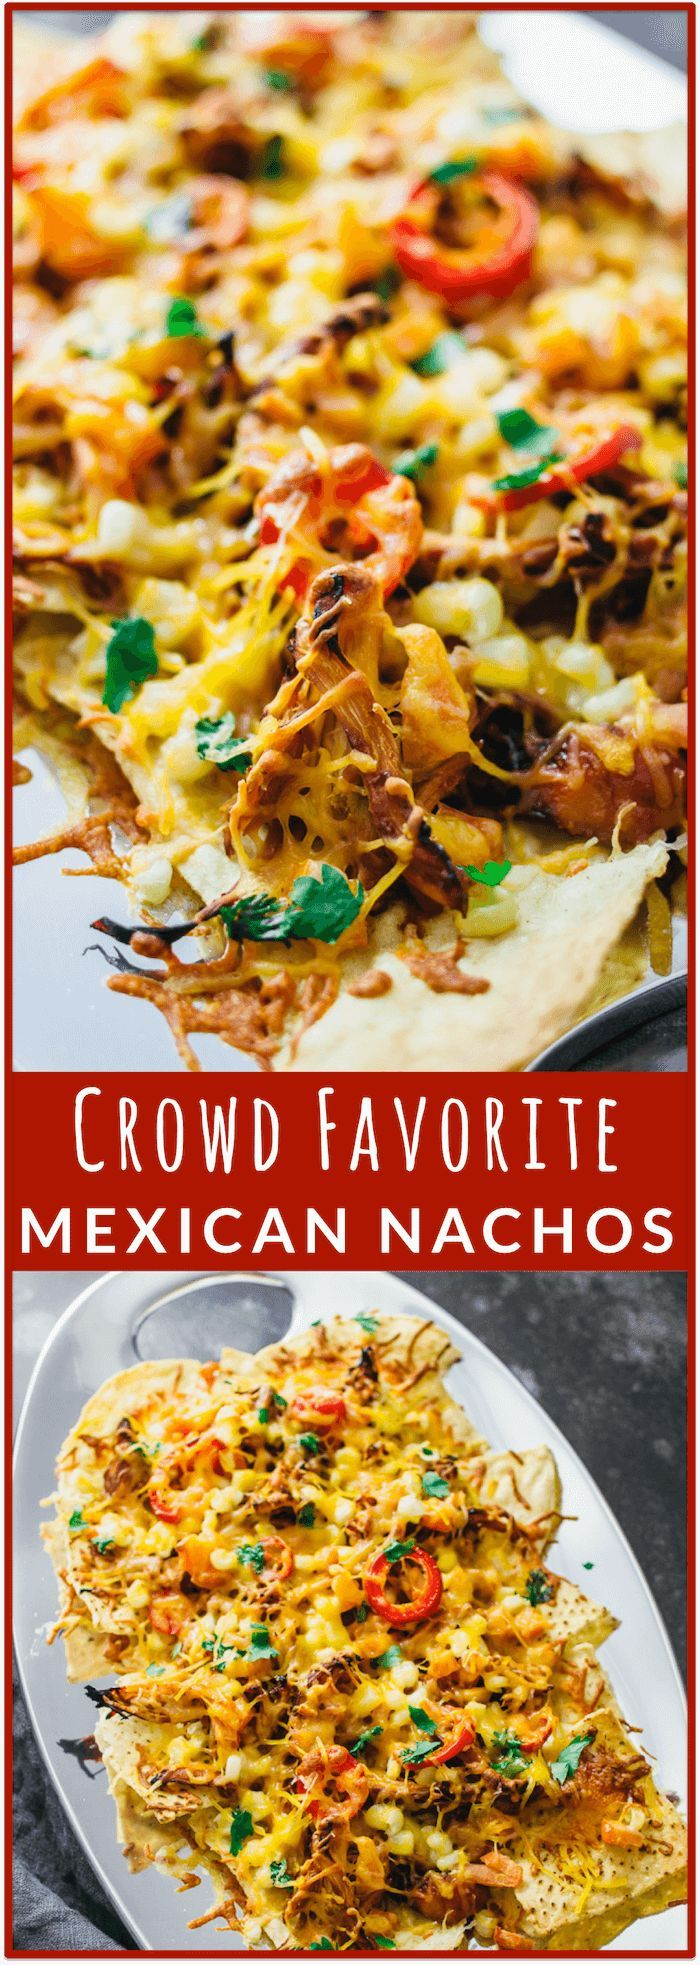 Loaded Mexican nachos with chicken - These LOADED Mexican nachos are super savory and hearty with shredded chicken, diced tomatoes, a splash of corn, sliced jalapeño, and plenty of shredded cheese. This is the perfect recipe for making baked nachos that are a crowd favorite. - http://savorytooth.com